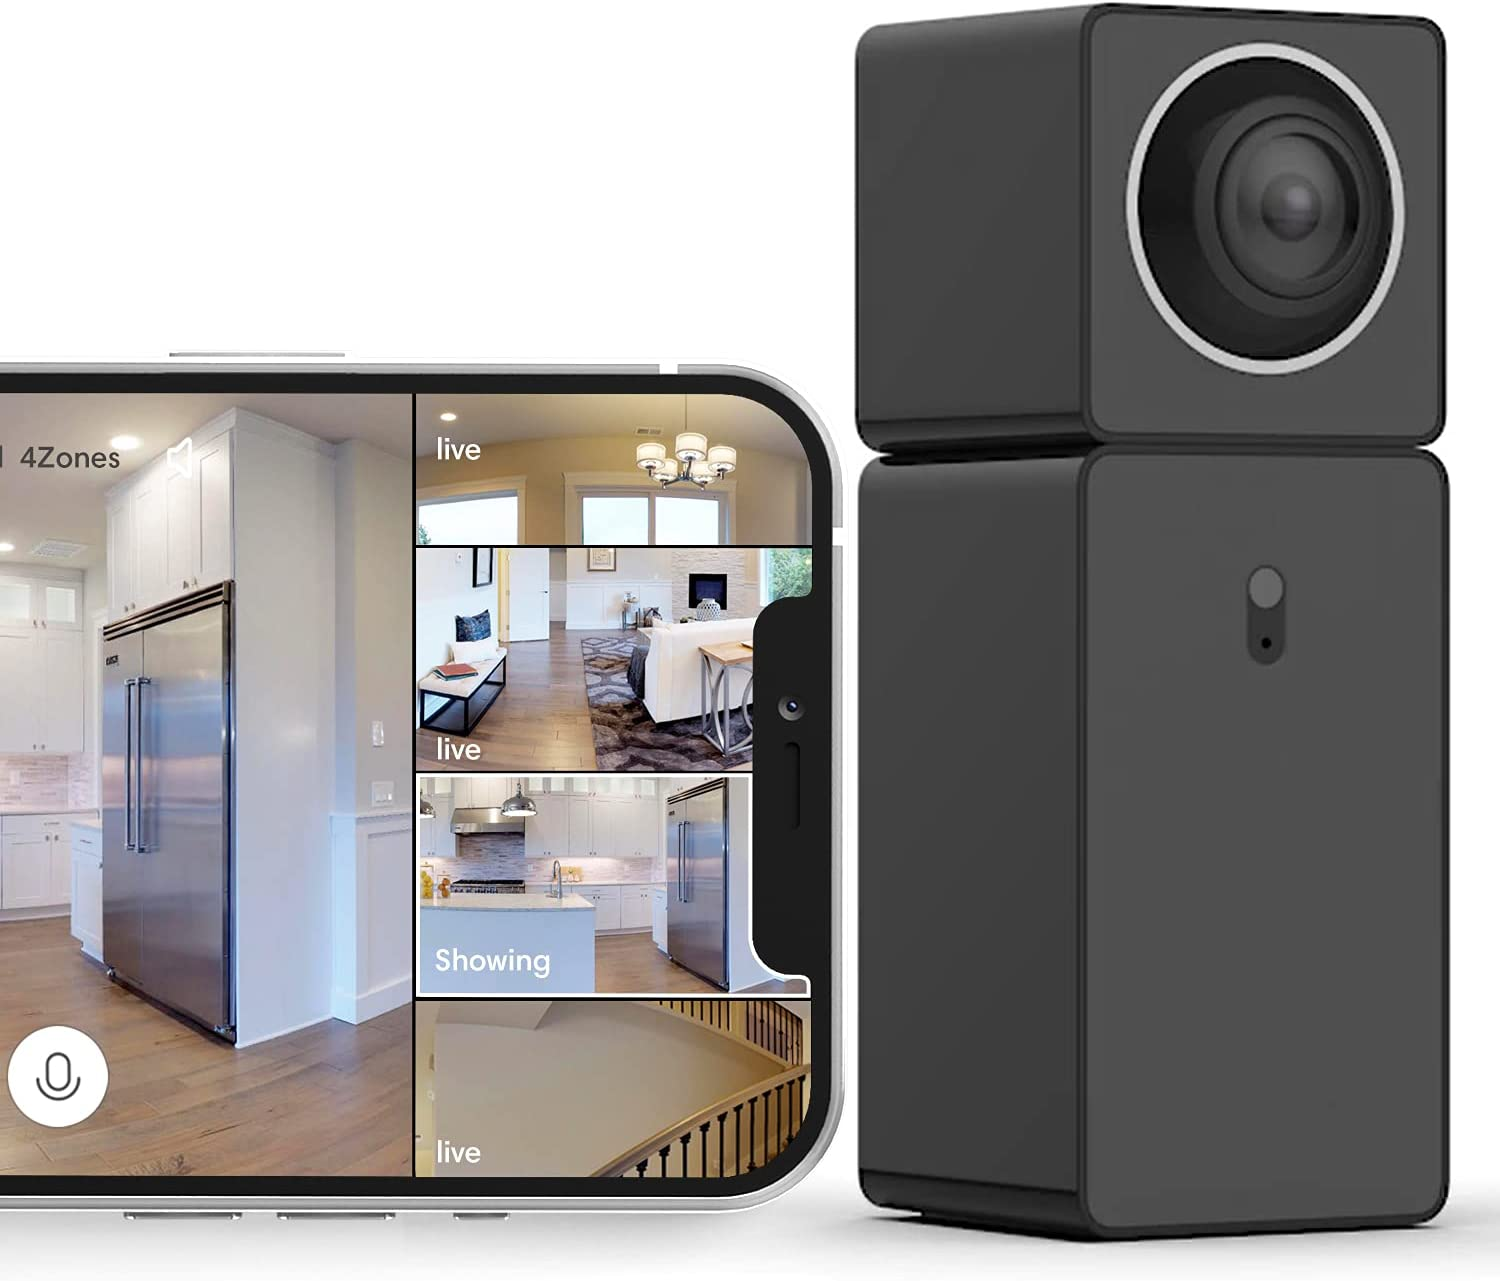 See 4 Areas with 1 Camera, Wi-Fi Home Security Camera with 360° Video Coverage, 2-Way Audio, Night Vision, Motion Detection, 1080P FHD, Indoor Cam with Alerts, Cloud Storage, Alexa & Google Assist